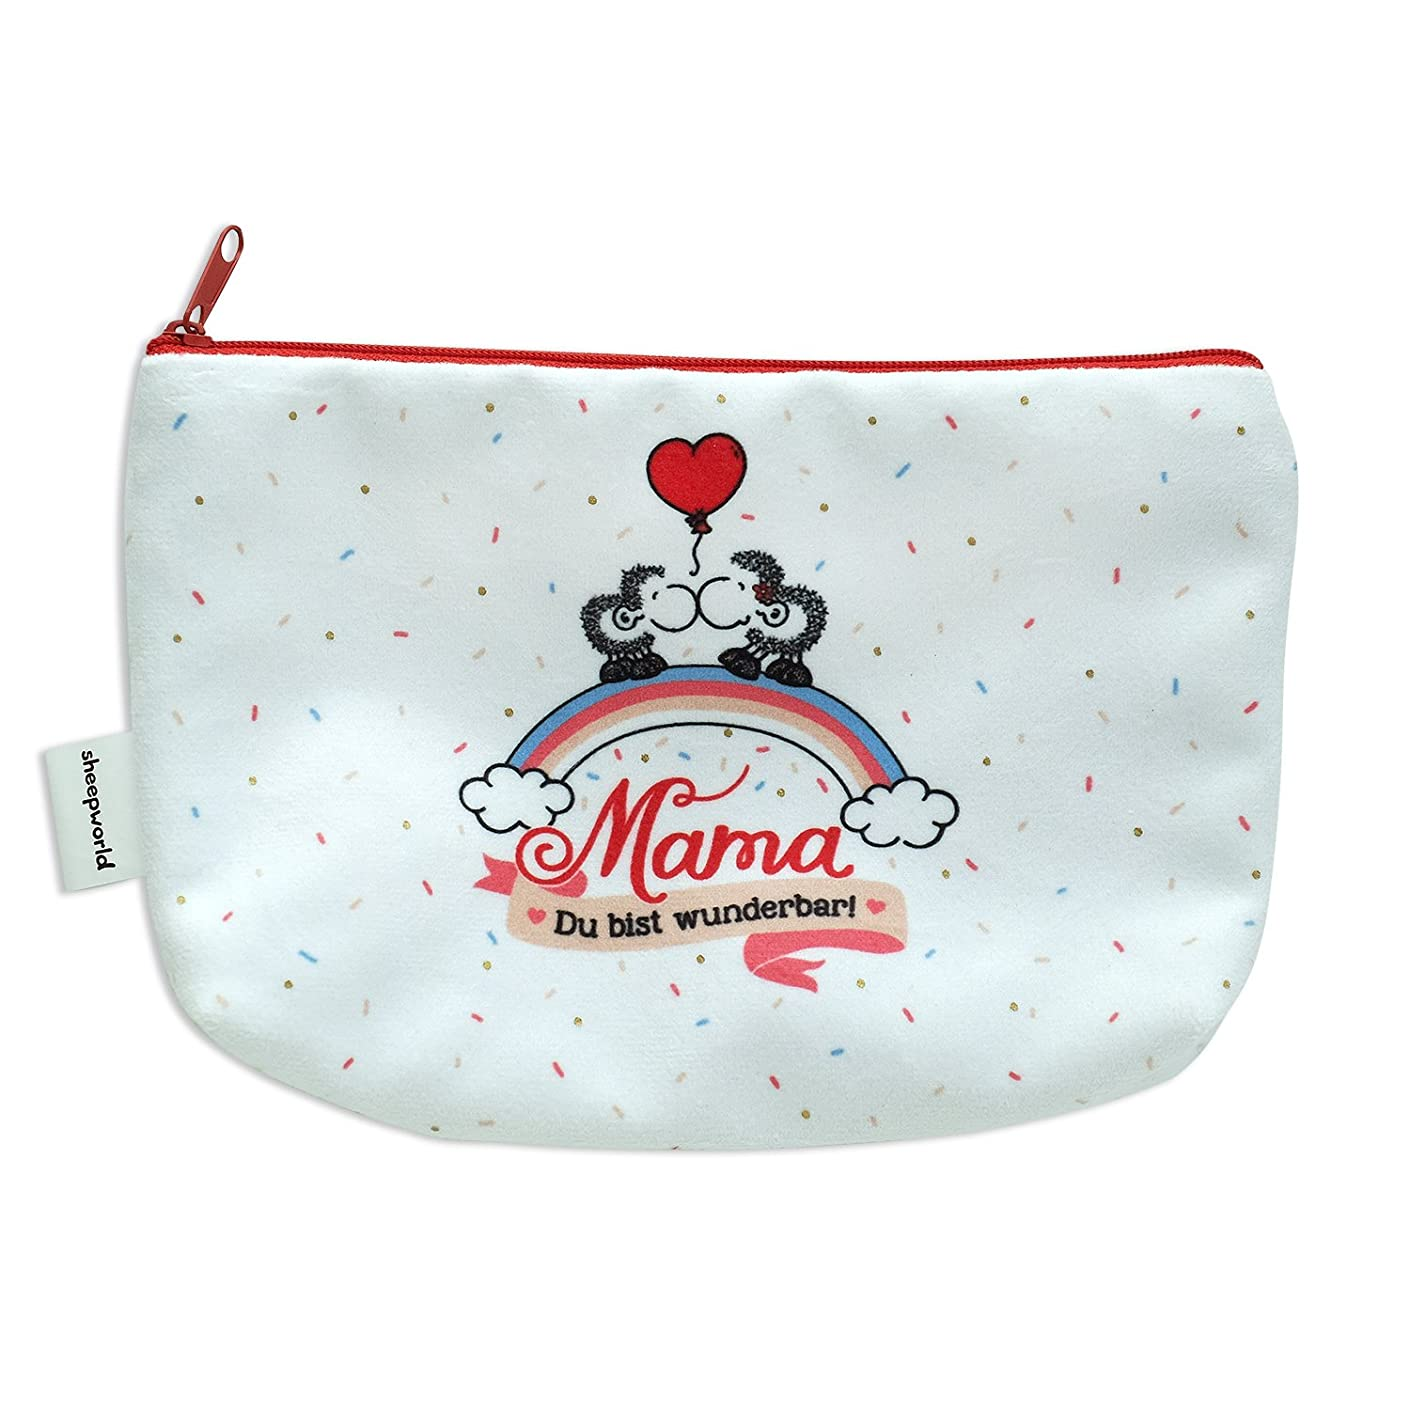 Sheepworld 45237?Plush Pencil Case?–?with Mum You're Lovely Black Zip Up Pencil Case, Polyester, Multi-Coloured, 20?x 12?x 4?cm